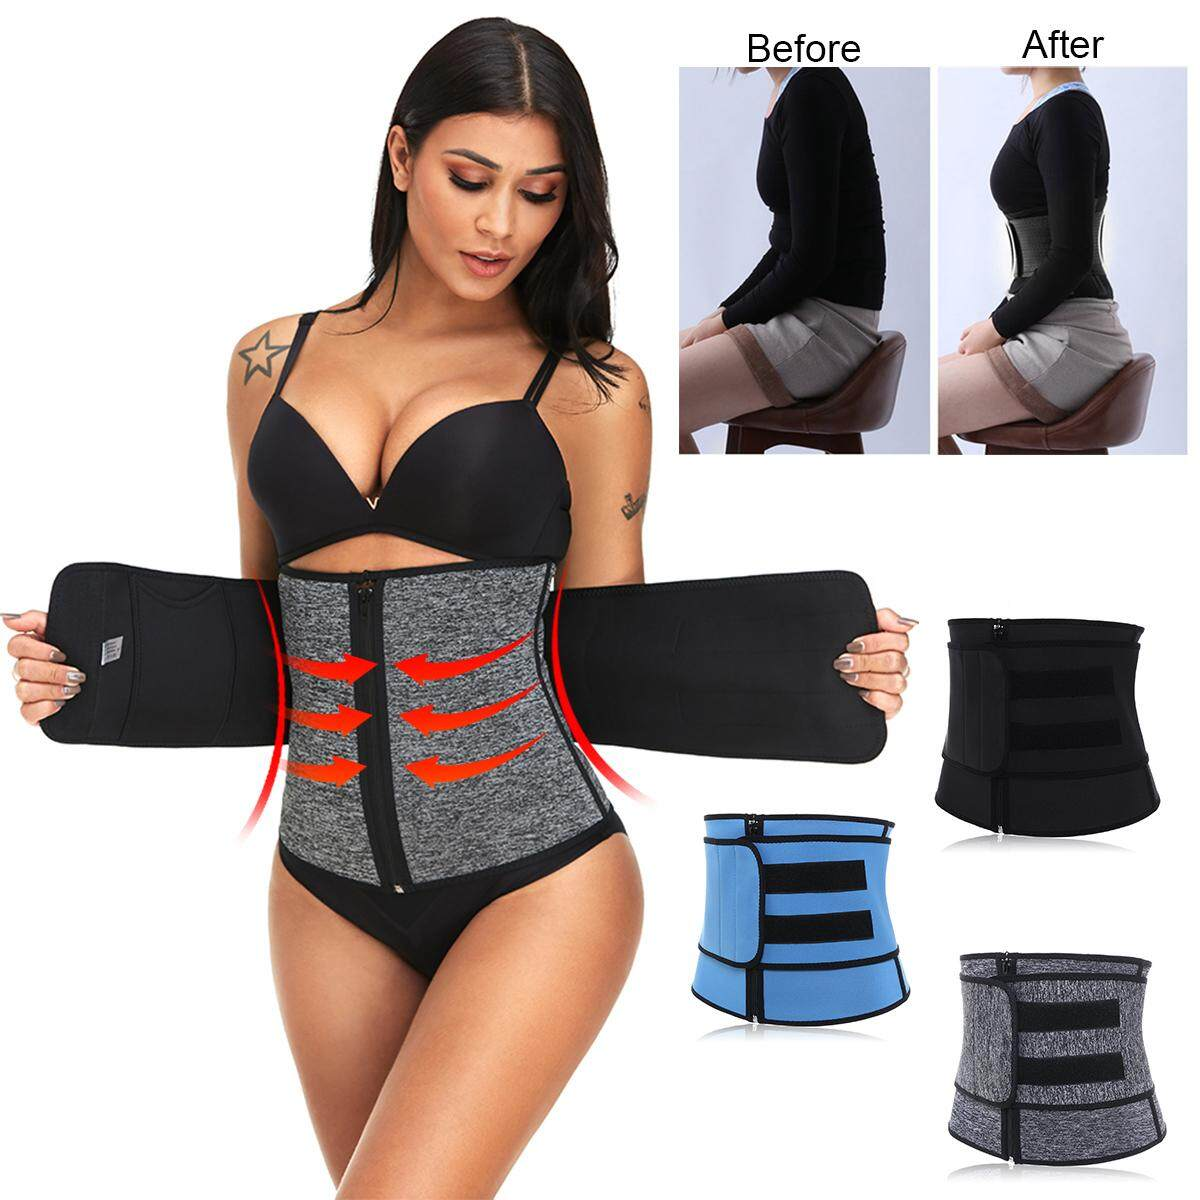 Sport Waist Cincher Corset Girdle Belt Body Shaper Tummy Trainer Belly Training【black】 By Freebang.